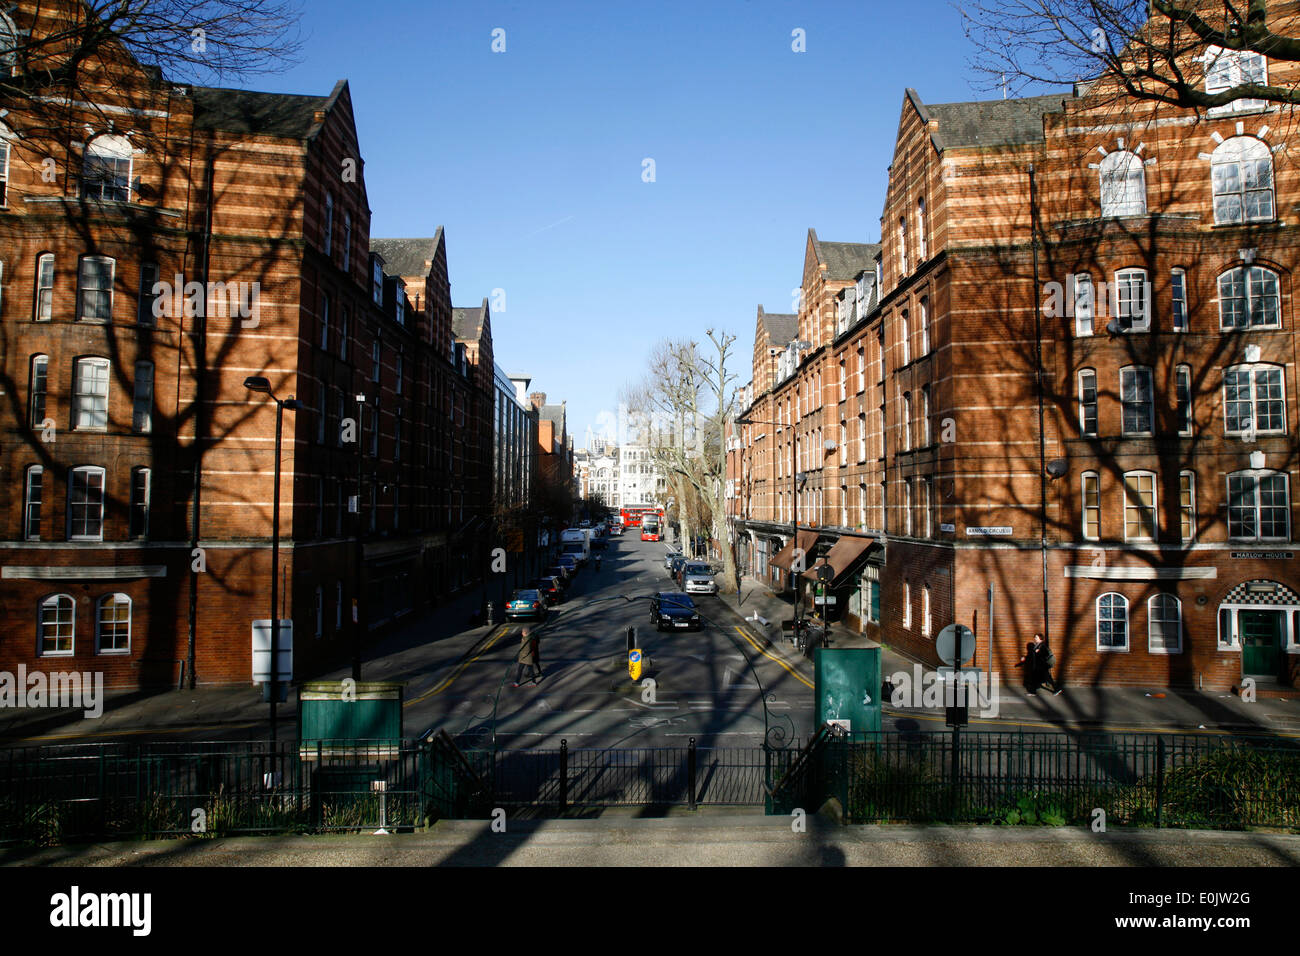 Vue vers le bas de l'Avenue Calvert Jardins limitrophes, Arnold Circus, Shoreditch, London, UK Photo Stock